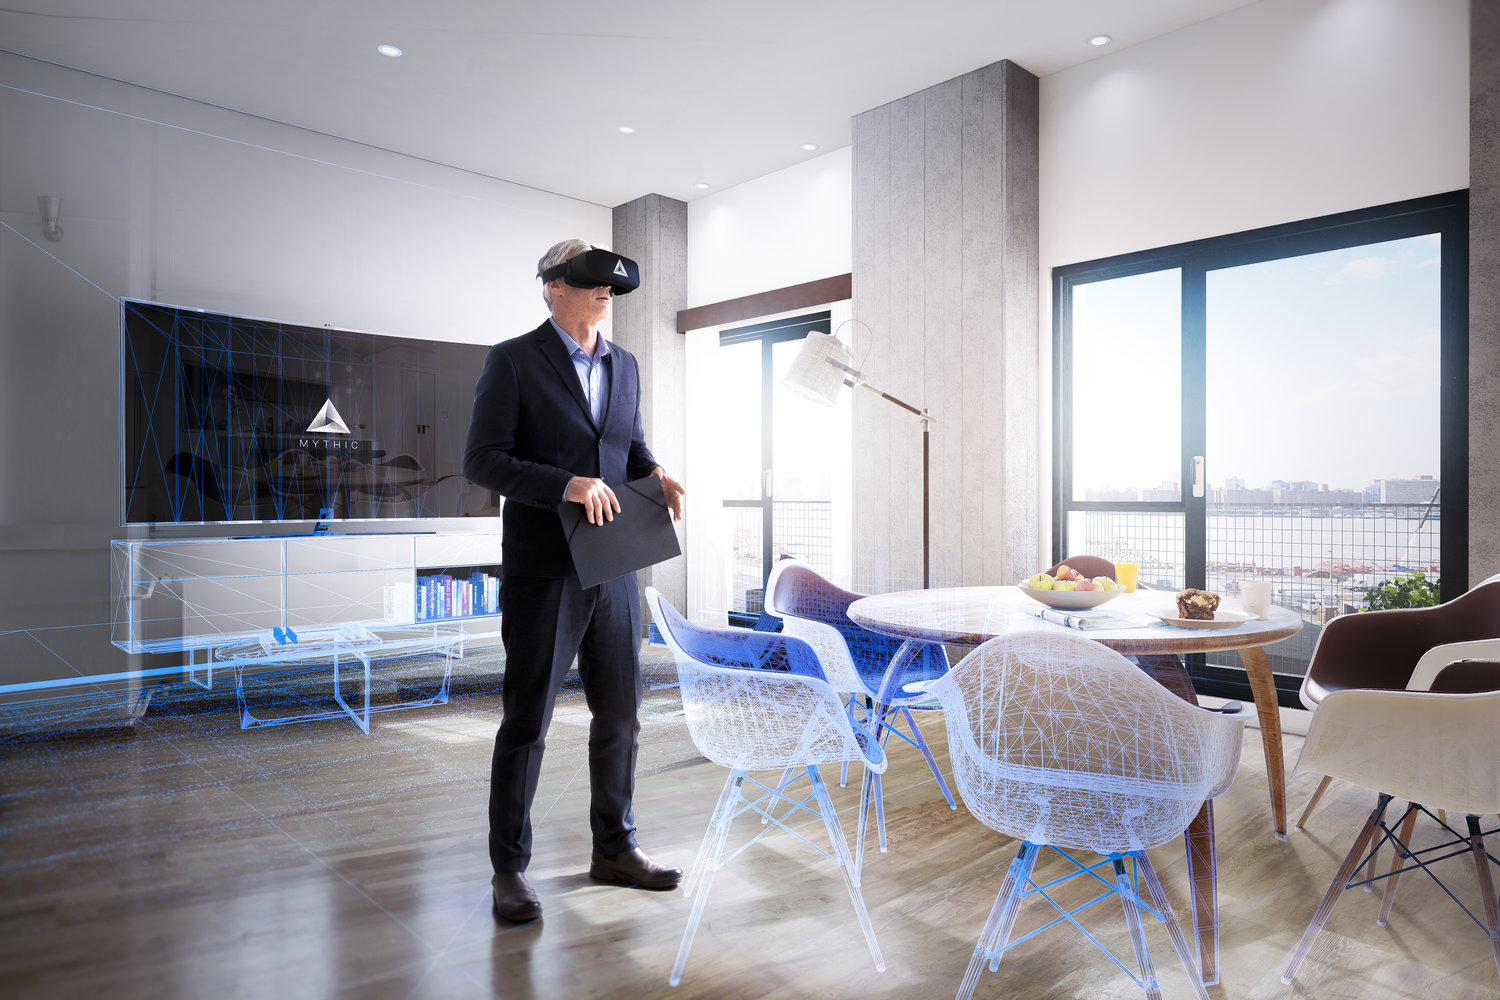 Mythic Vr Vr For Real Estate Architecture Design Mythic Vr Vr